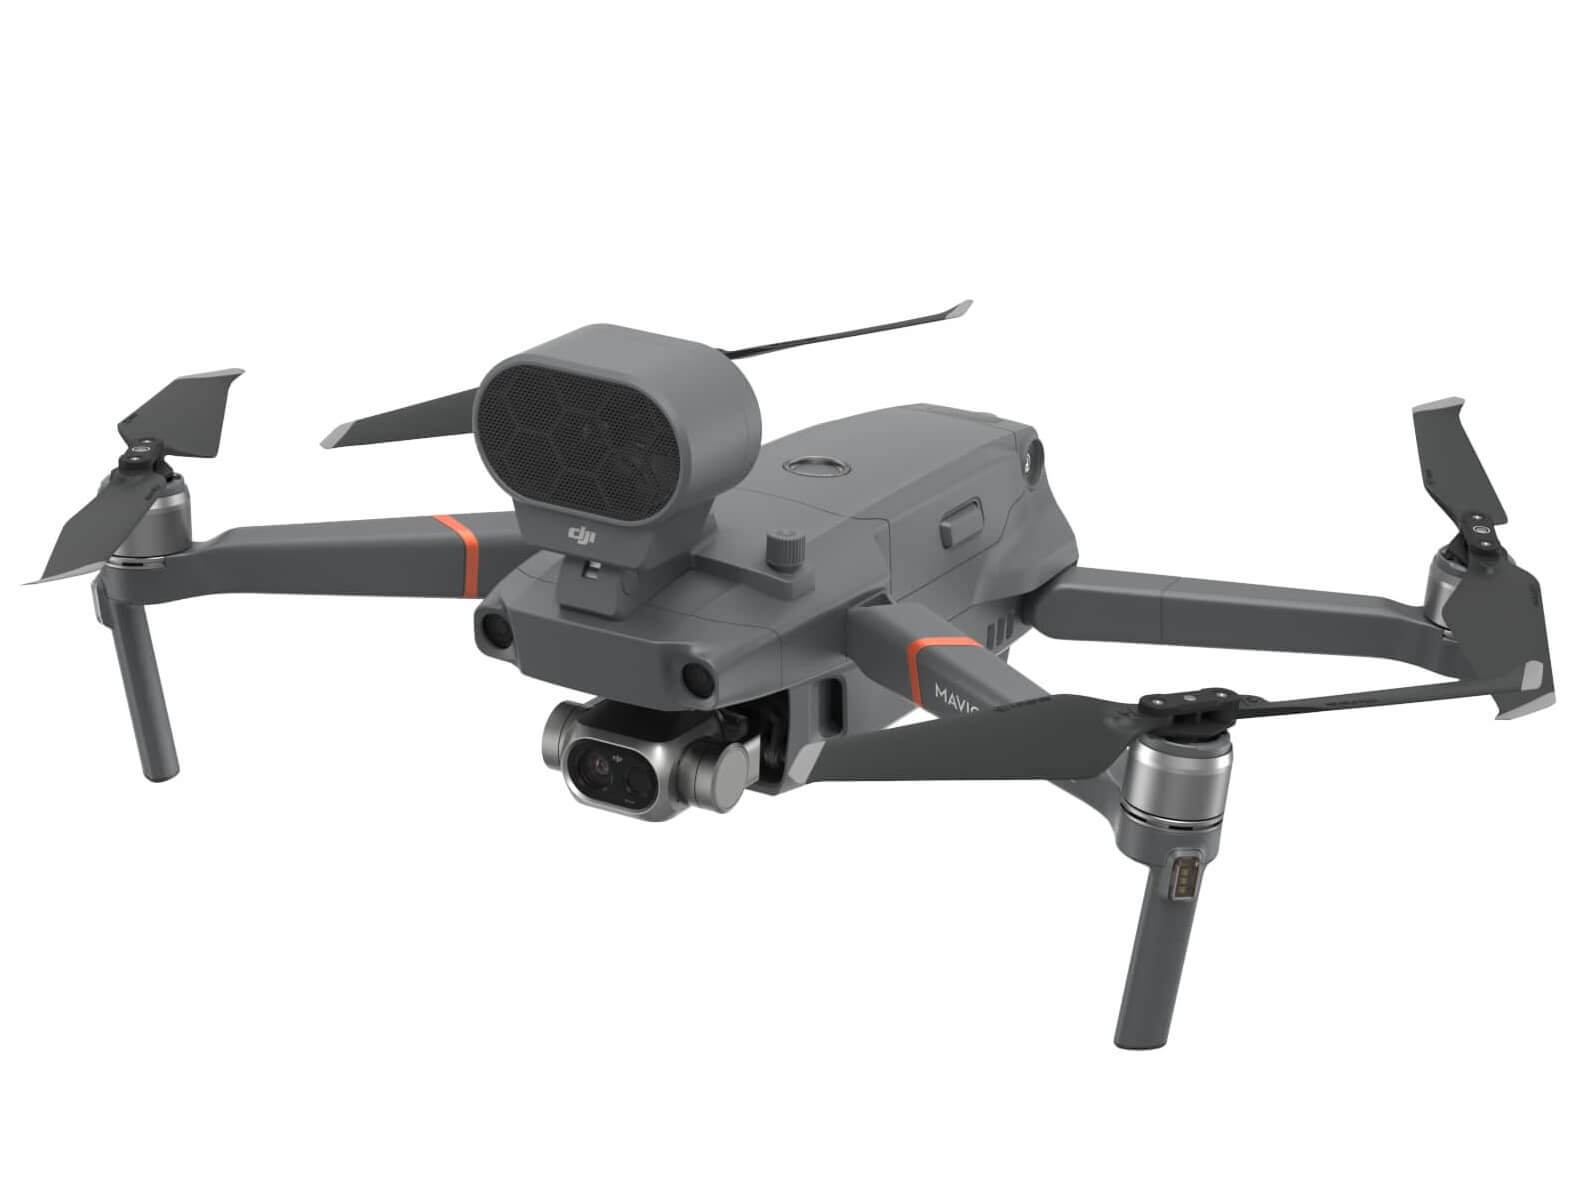 9d0a4b4dc9a DJI has introduced the Mavic 2 Enterprise Dual, a portable, industrial  drone featuring side-by-side visual and thermal cameras.